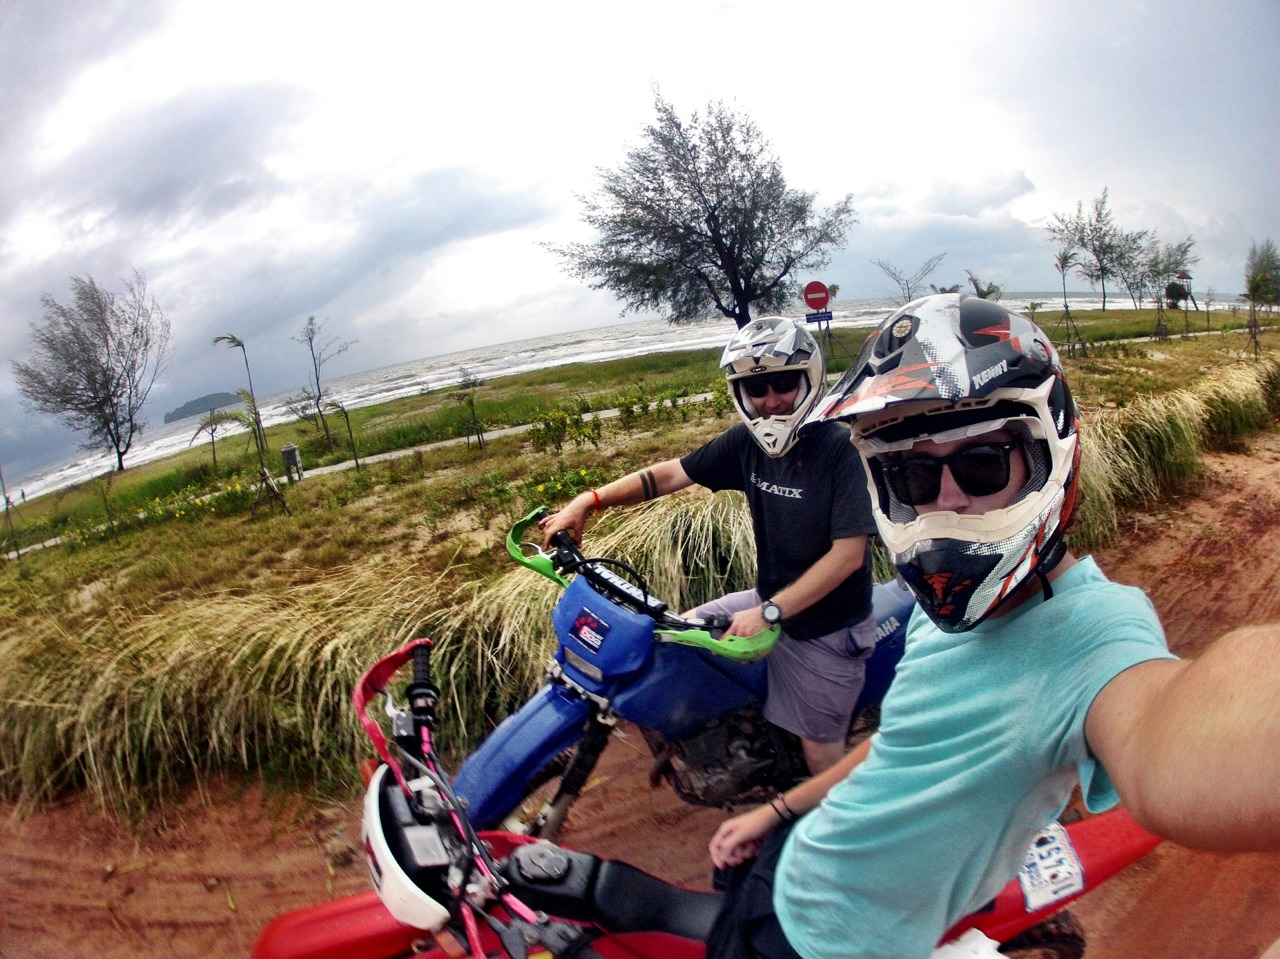 Jeff and his brother Chris riding dirt bikes in Cambodia